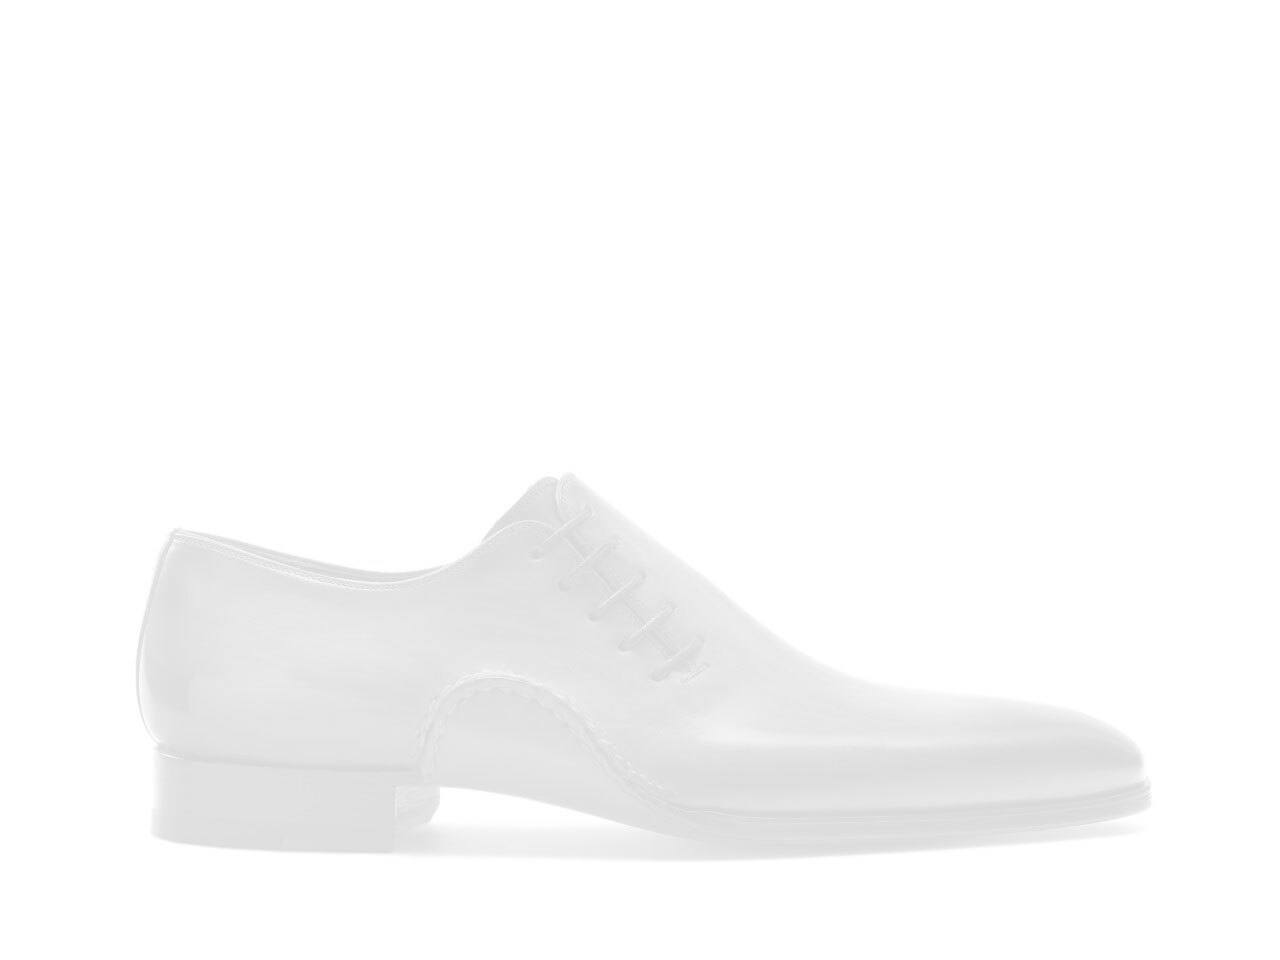 Pair of the Magnanni Arnoia White and Cuero Men's Sneakers